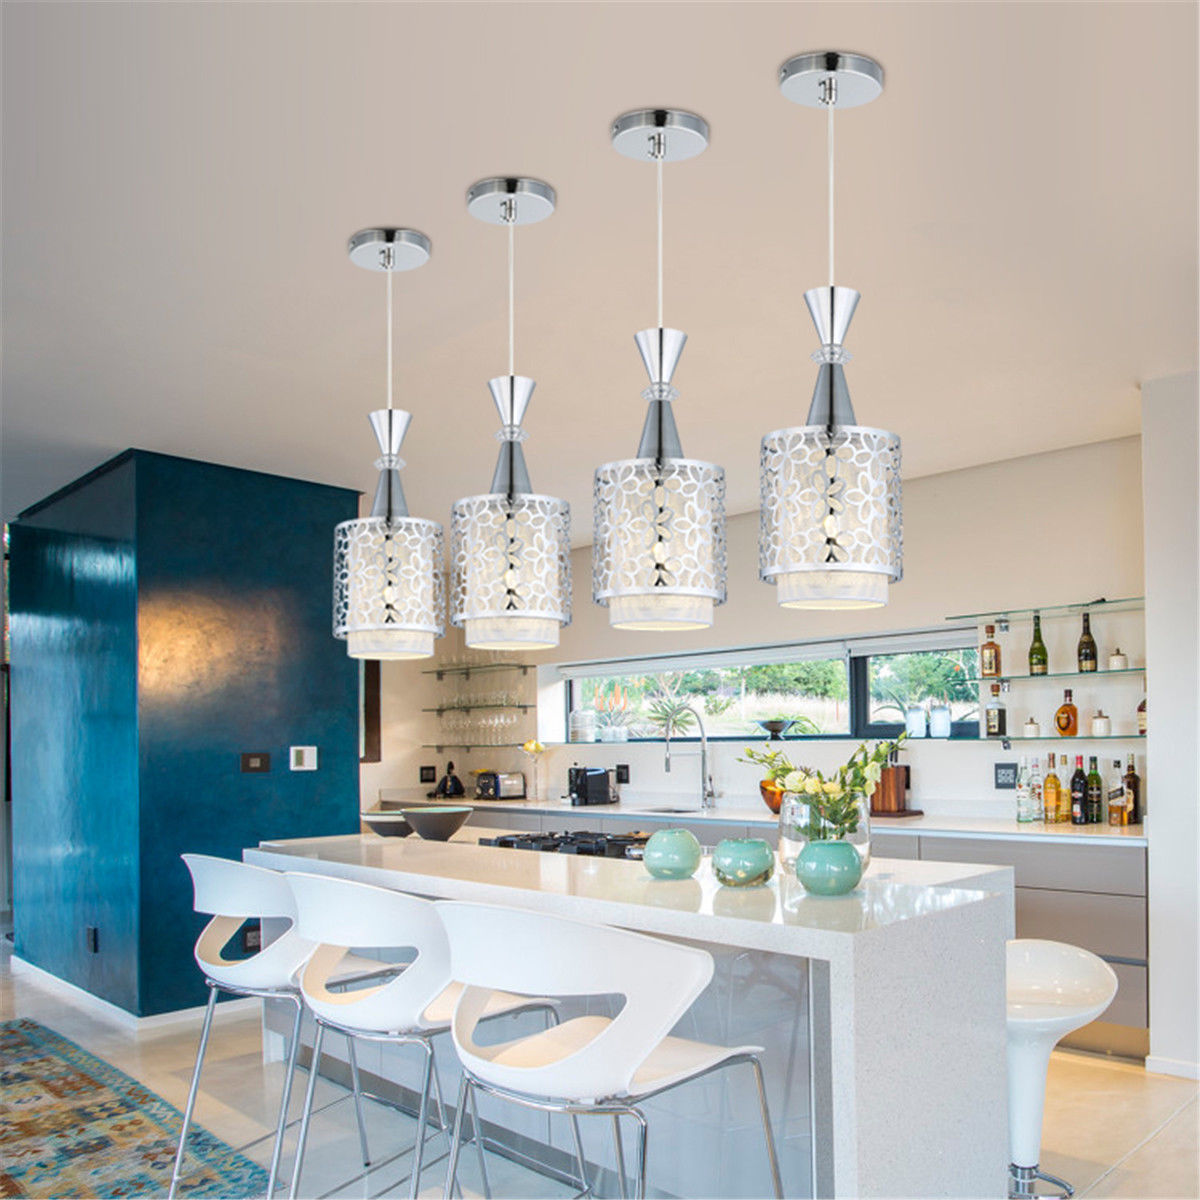 Details about modern crystal iron ceiling light pendant lamp dining room chandelier decor